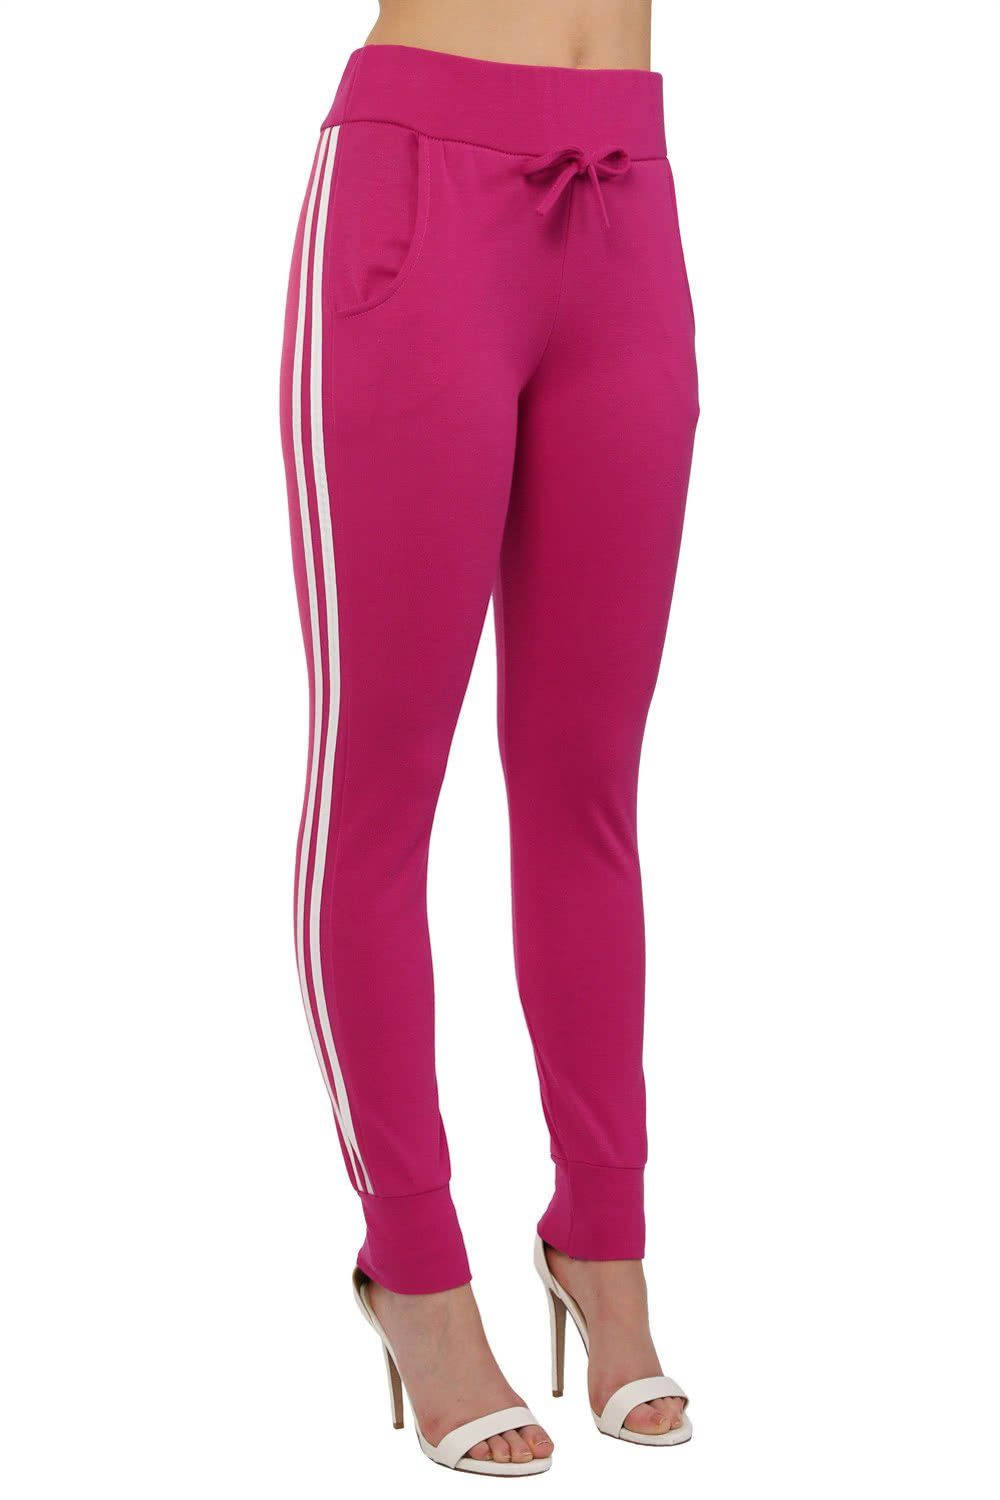 Trousers - Side Stripe Detail Jogger Loungewear Bottoms In Magenta Pink